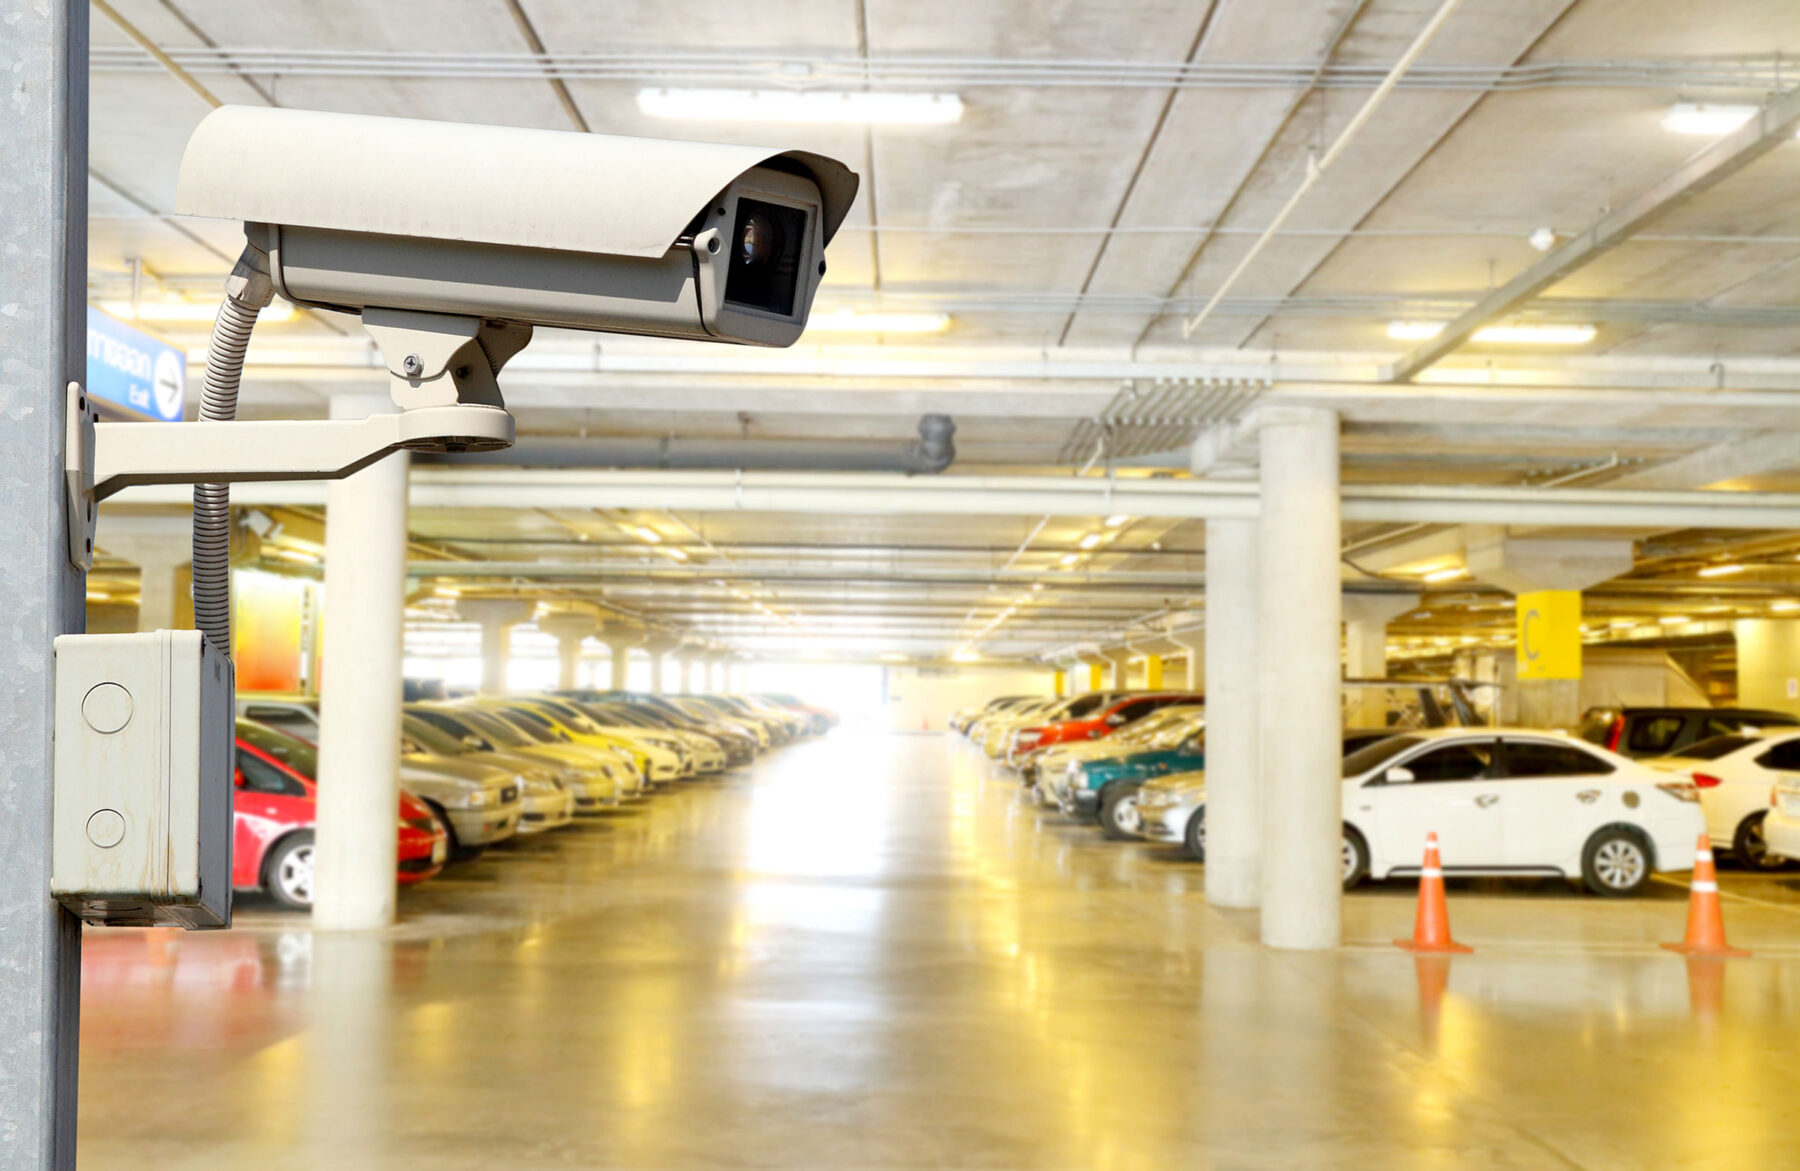 cameras in parking garage